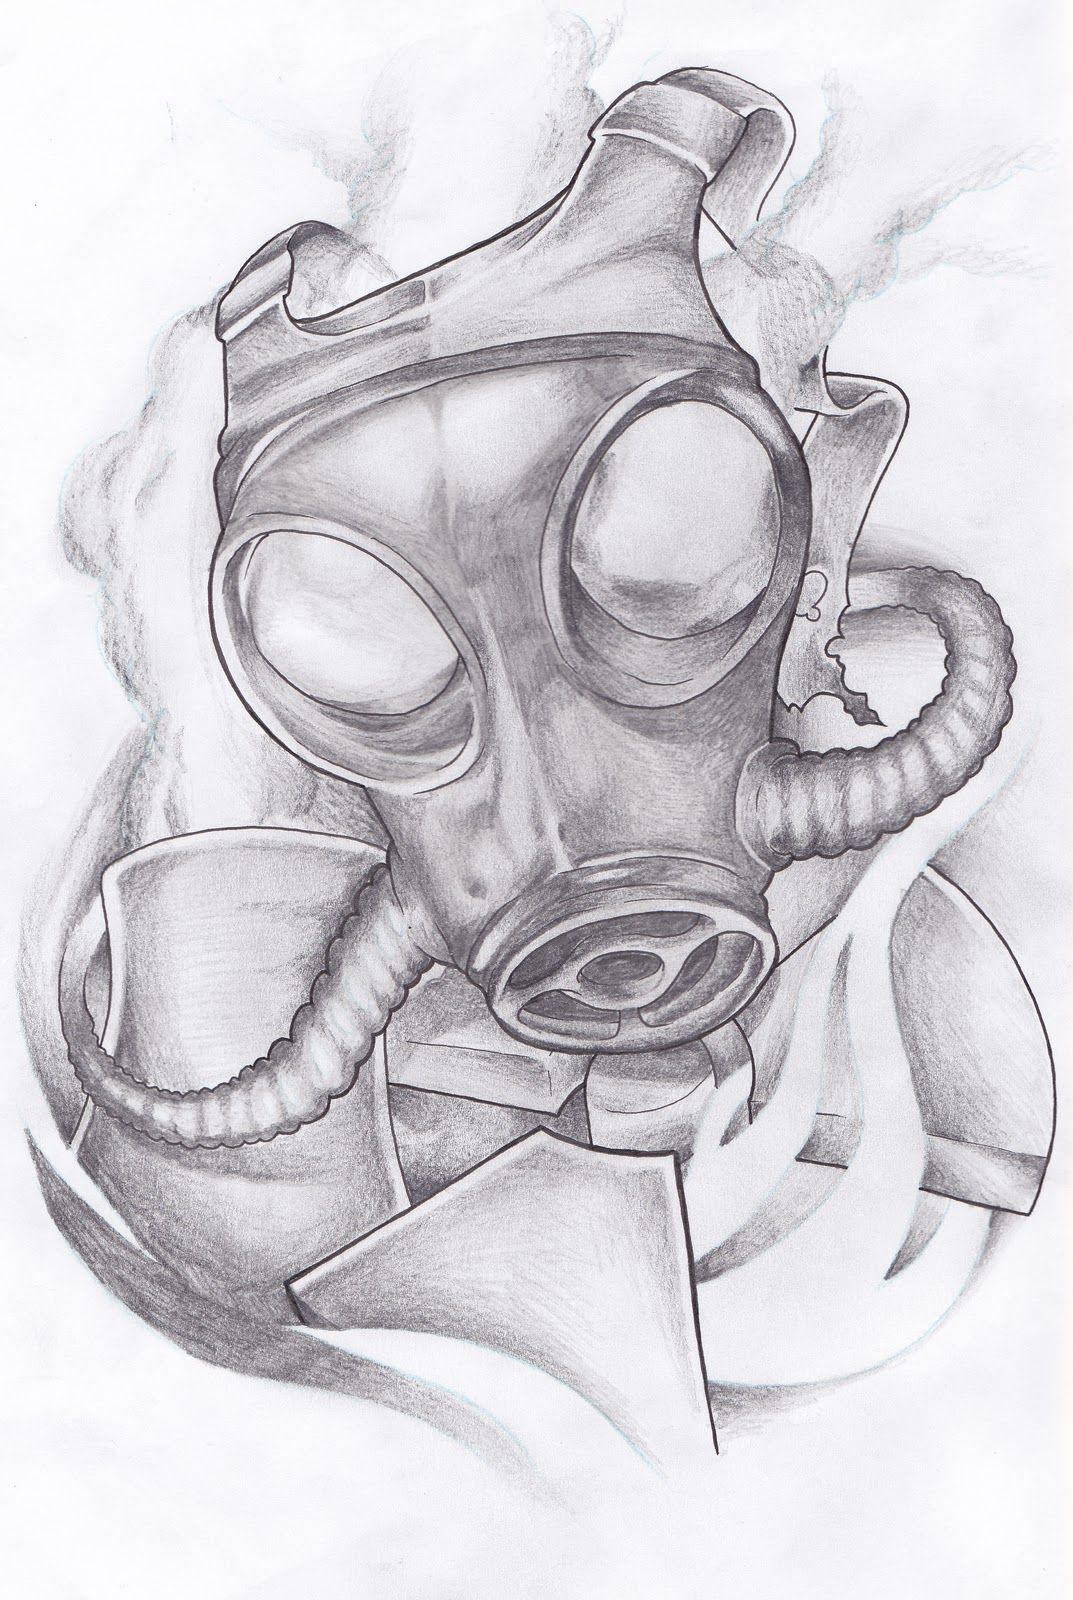 Art By: Black And Grey Illustrations